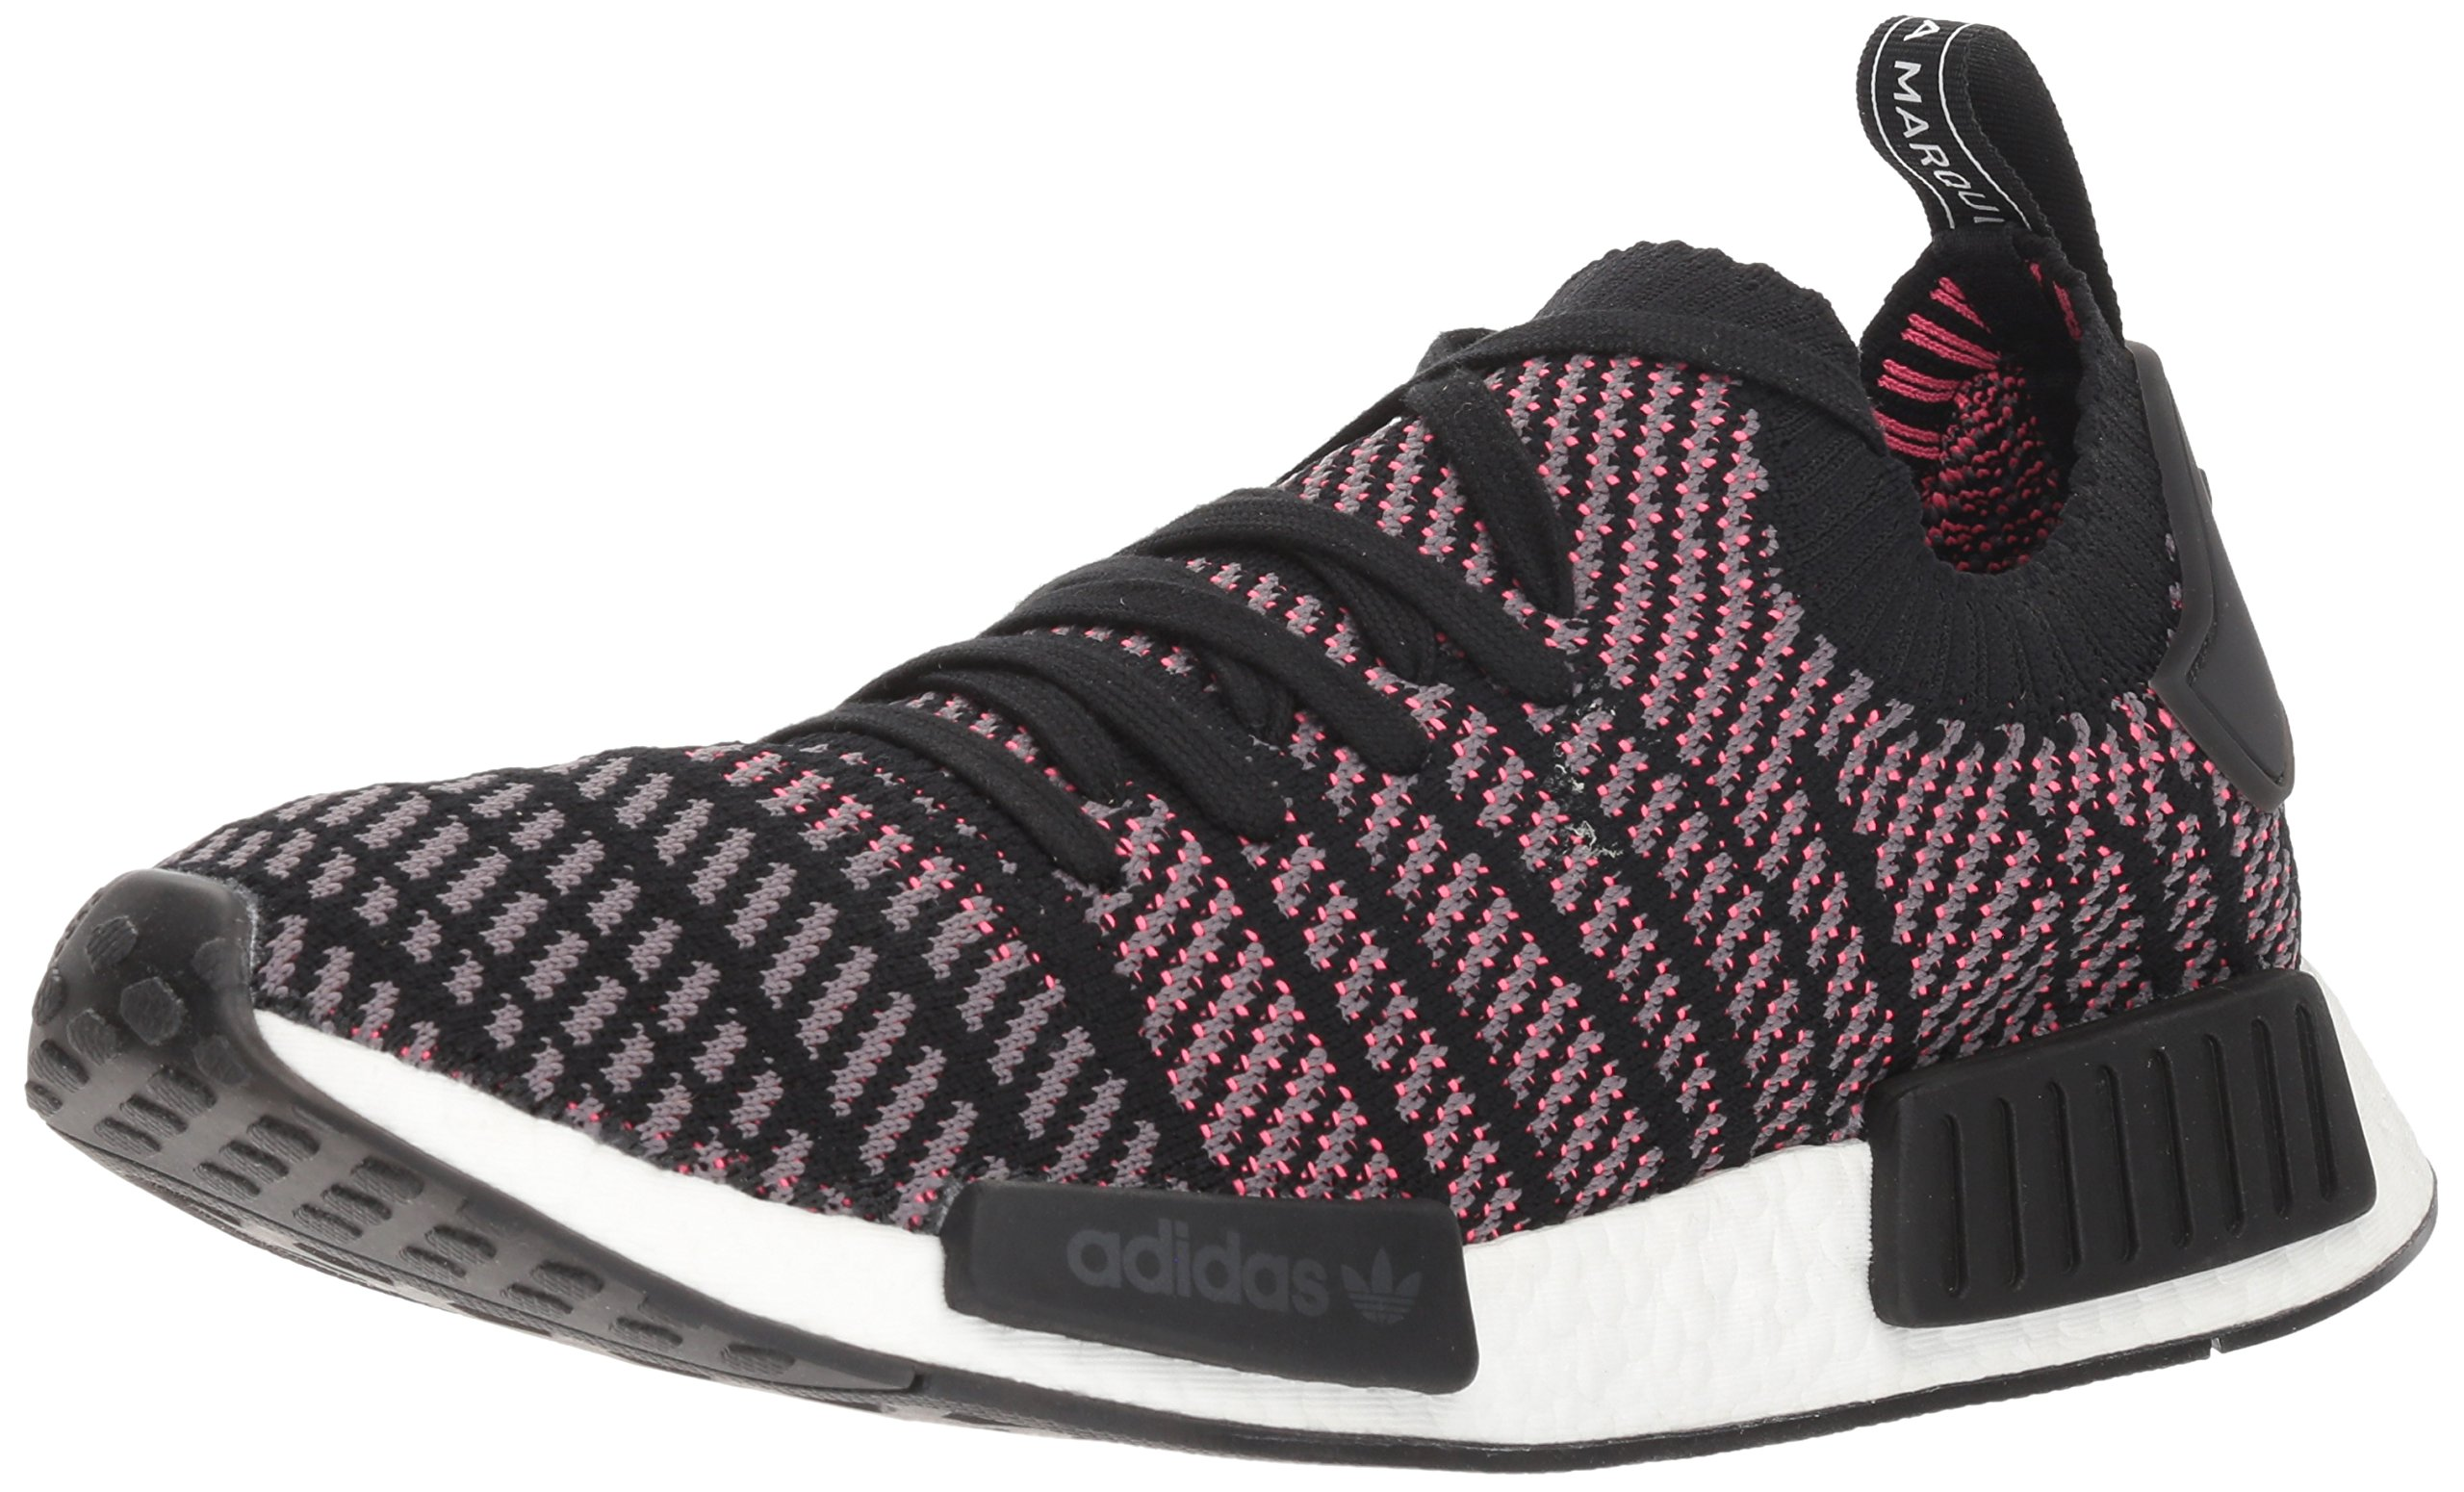 96aea7719 Adidas Nmd R1 Pk Size 10 Top Deals   Lowest Price